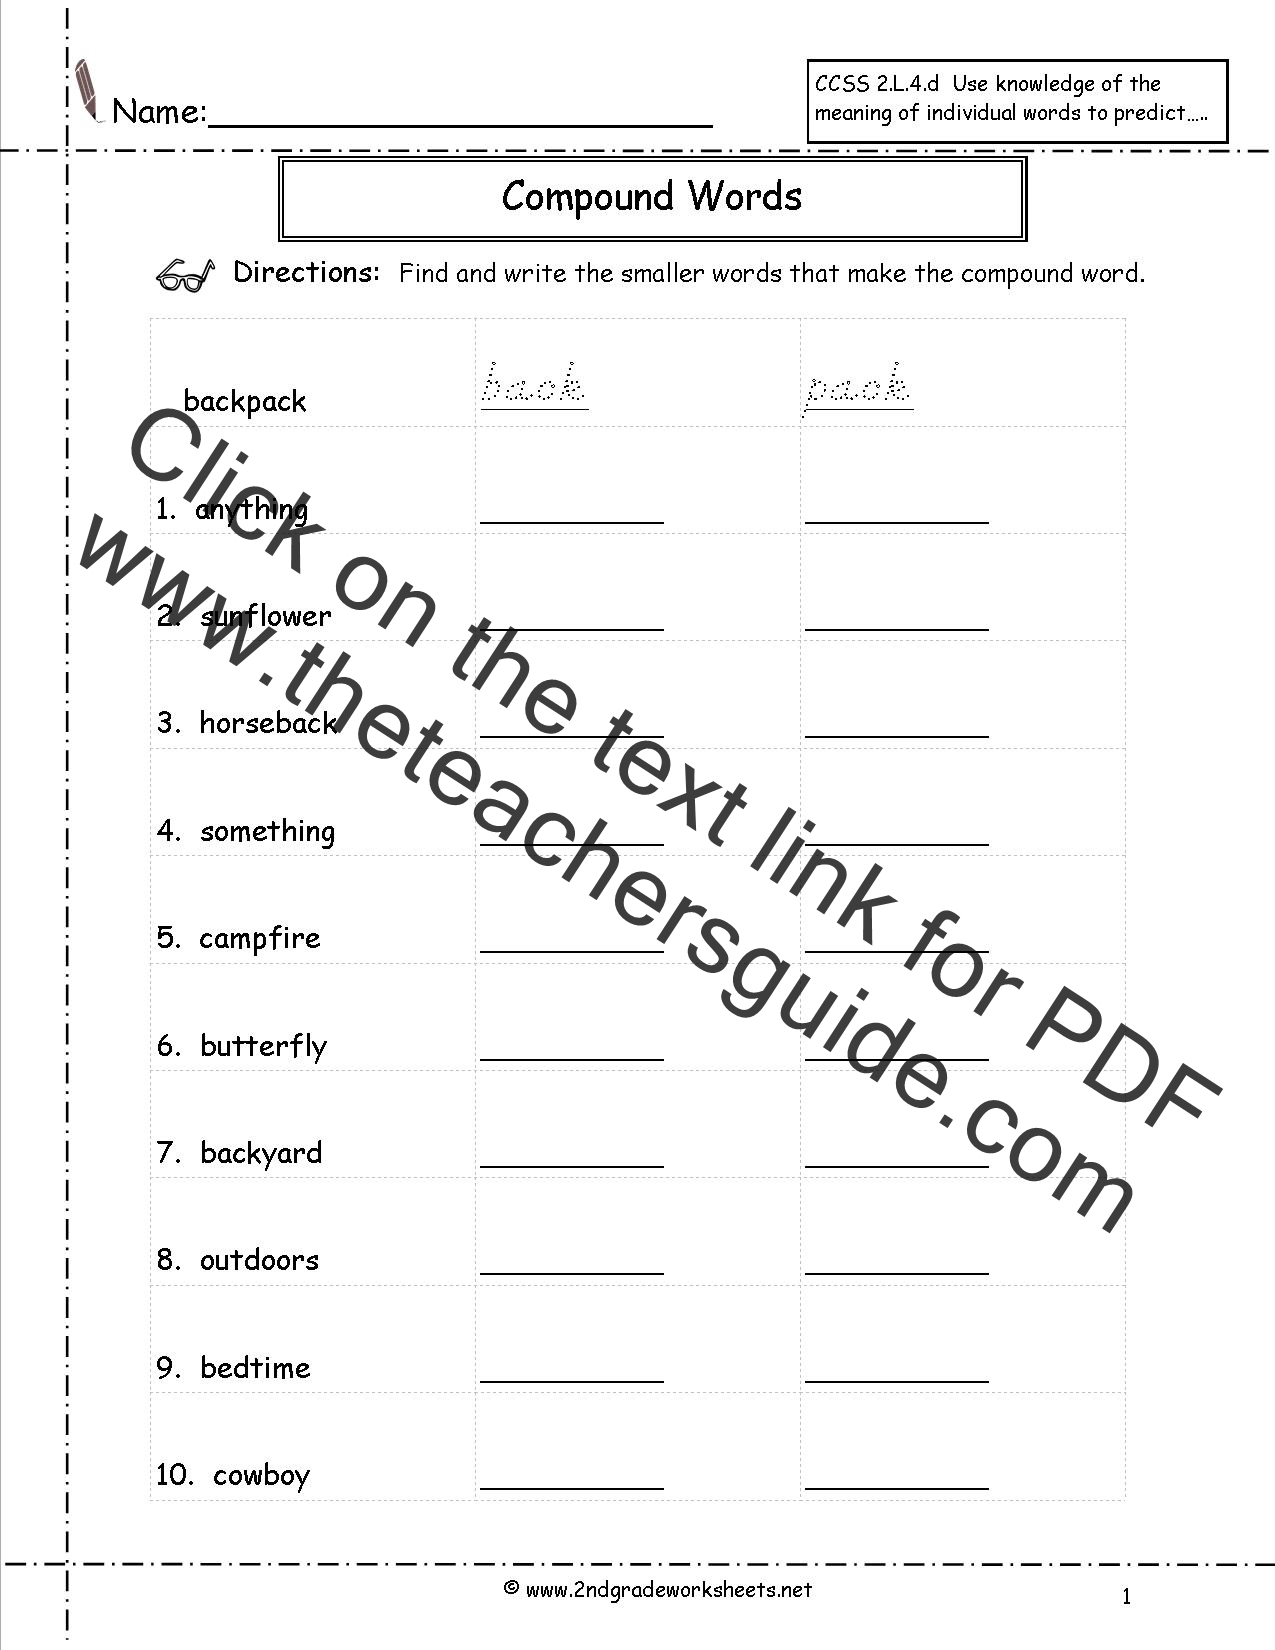 Worksheets Worksheets 2nd Grade free languagegrammar worksheets and printouts compound words worksheets